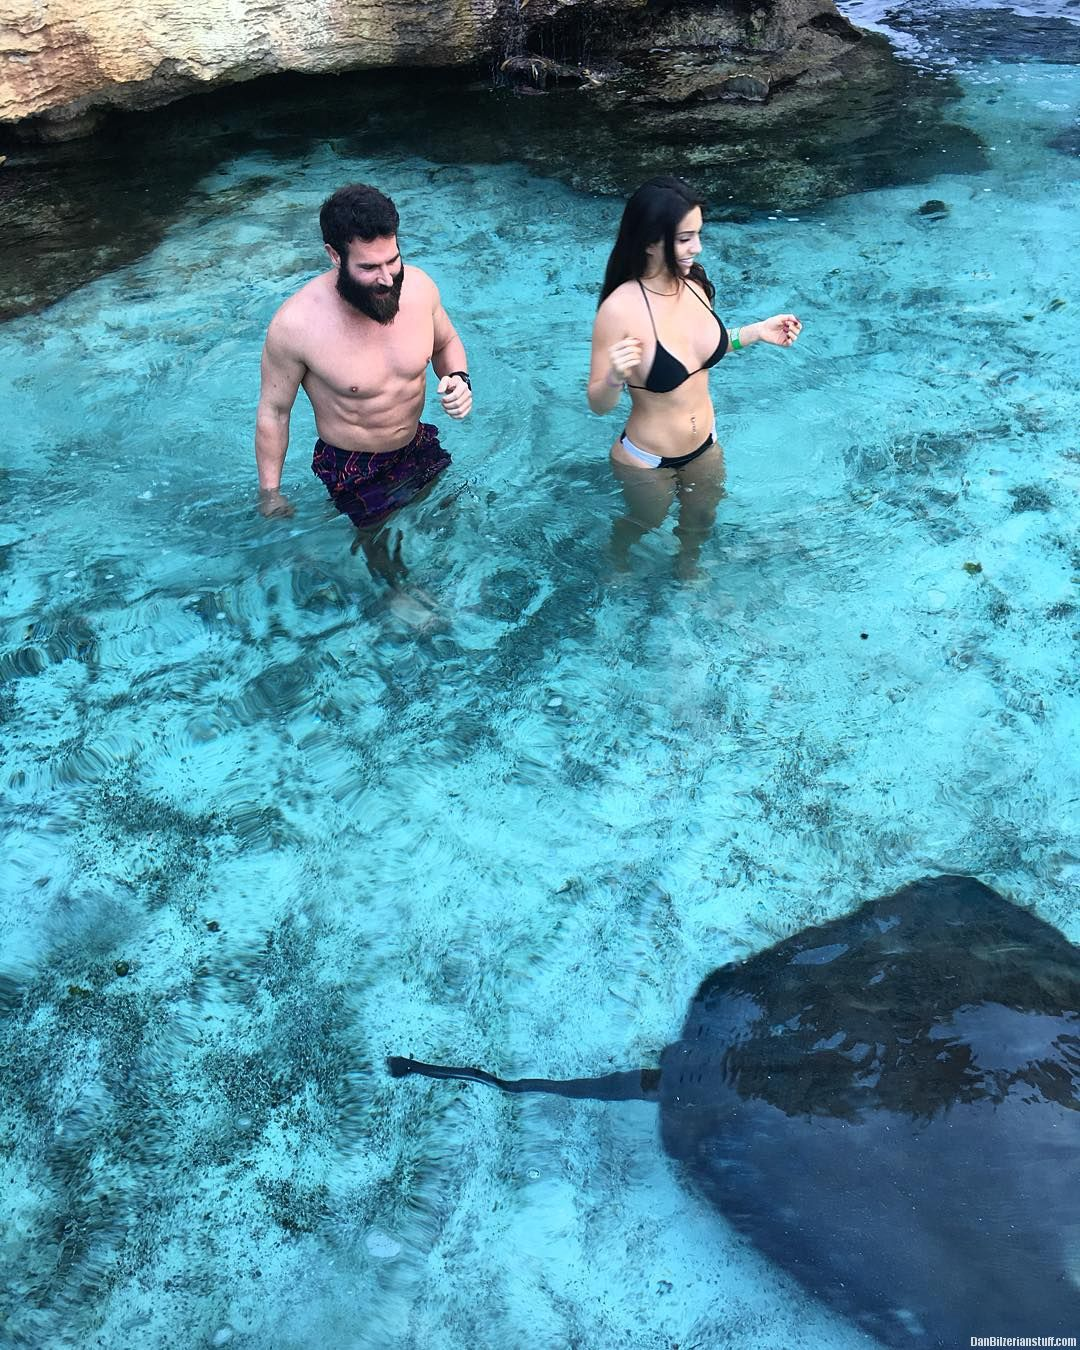 e5c0d8a1c4 Try not to step on the stingrays @laurenblakeee | Dan Bilzerian: Girls,  Guns and Supercars!